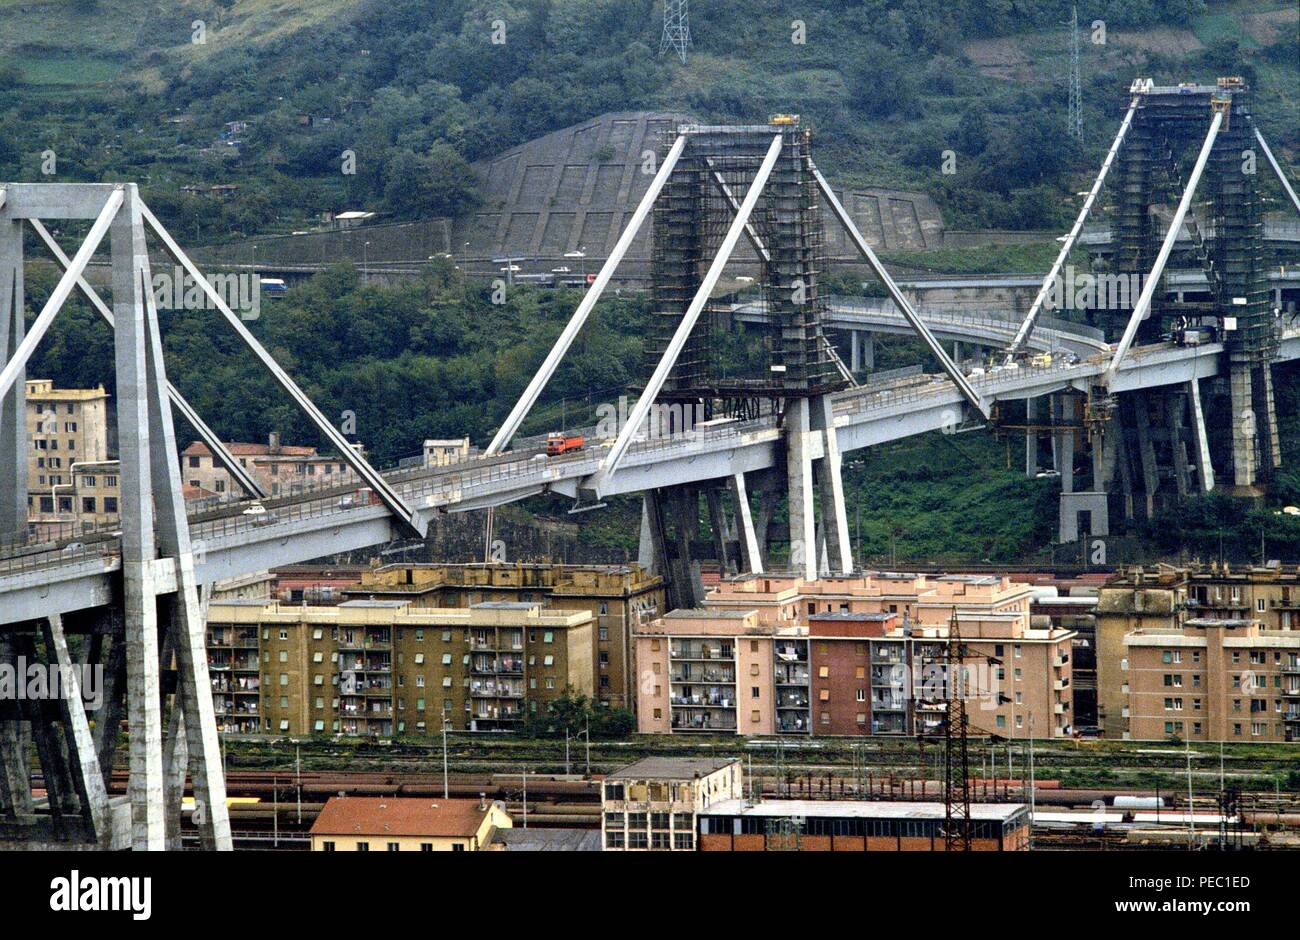 Genoa (Italy), archive photo of the viaduct of the A 10 motorway over Polcevera river called 'Ponte Morandi', which dramatically collapsed on 14 August 2018, causing dozens of deaths. - Stock Image